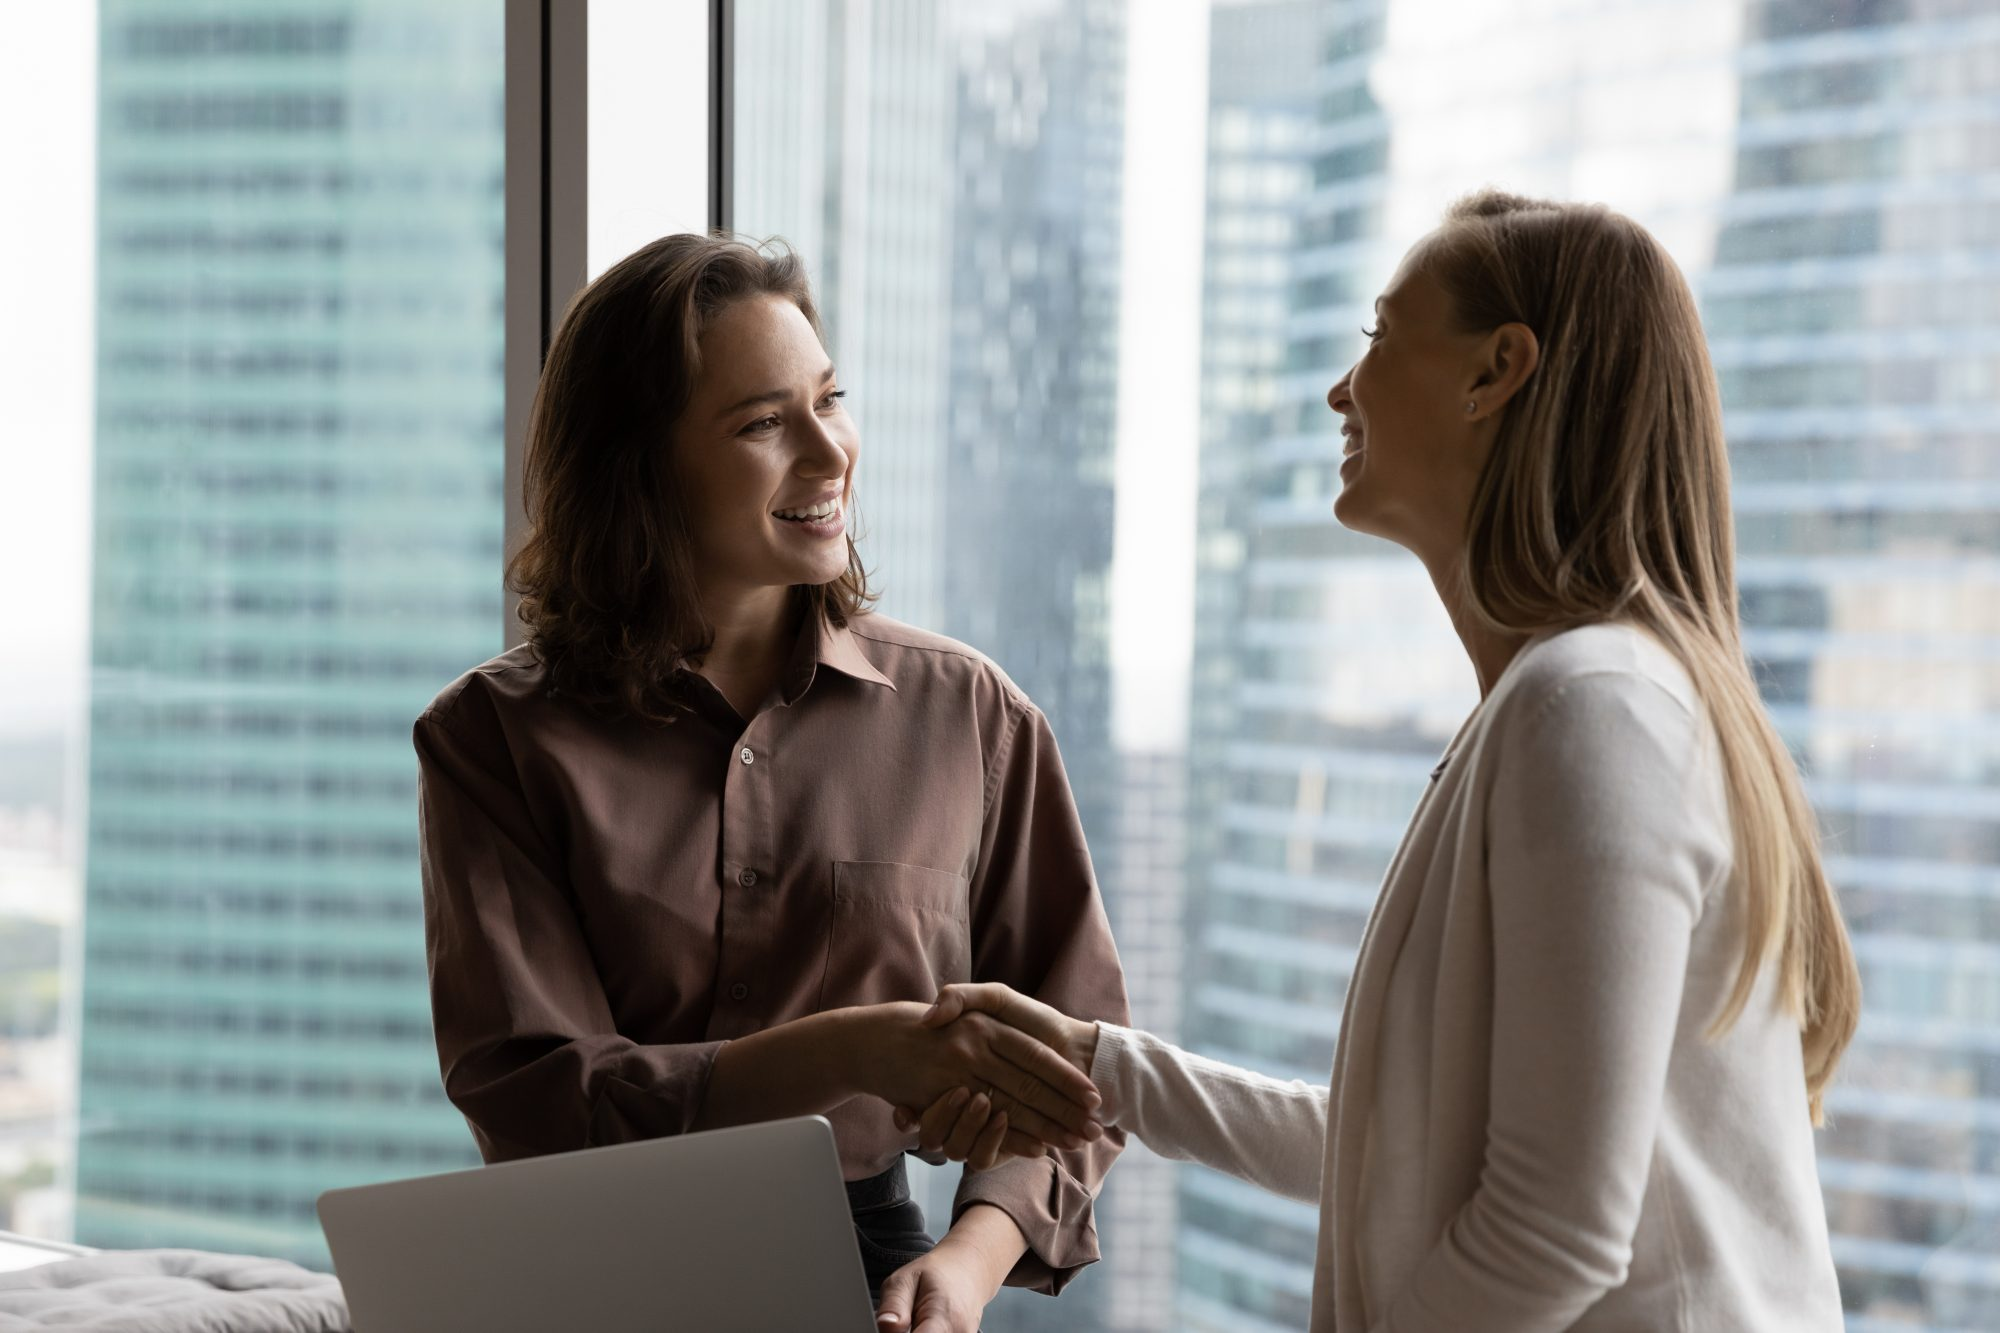 Smiling two business women shaking hands making agreement.